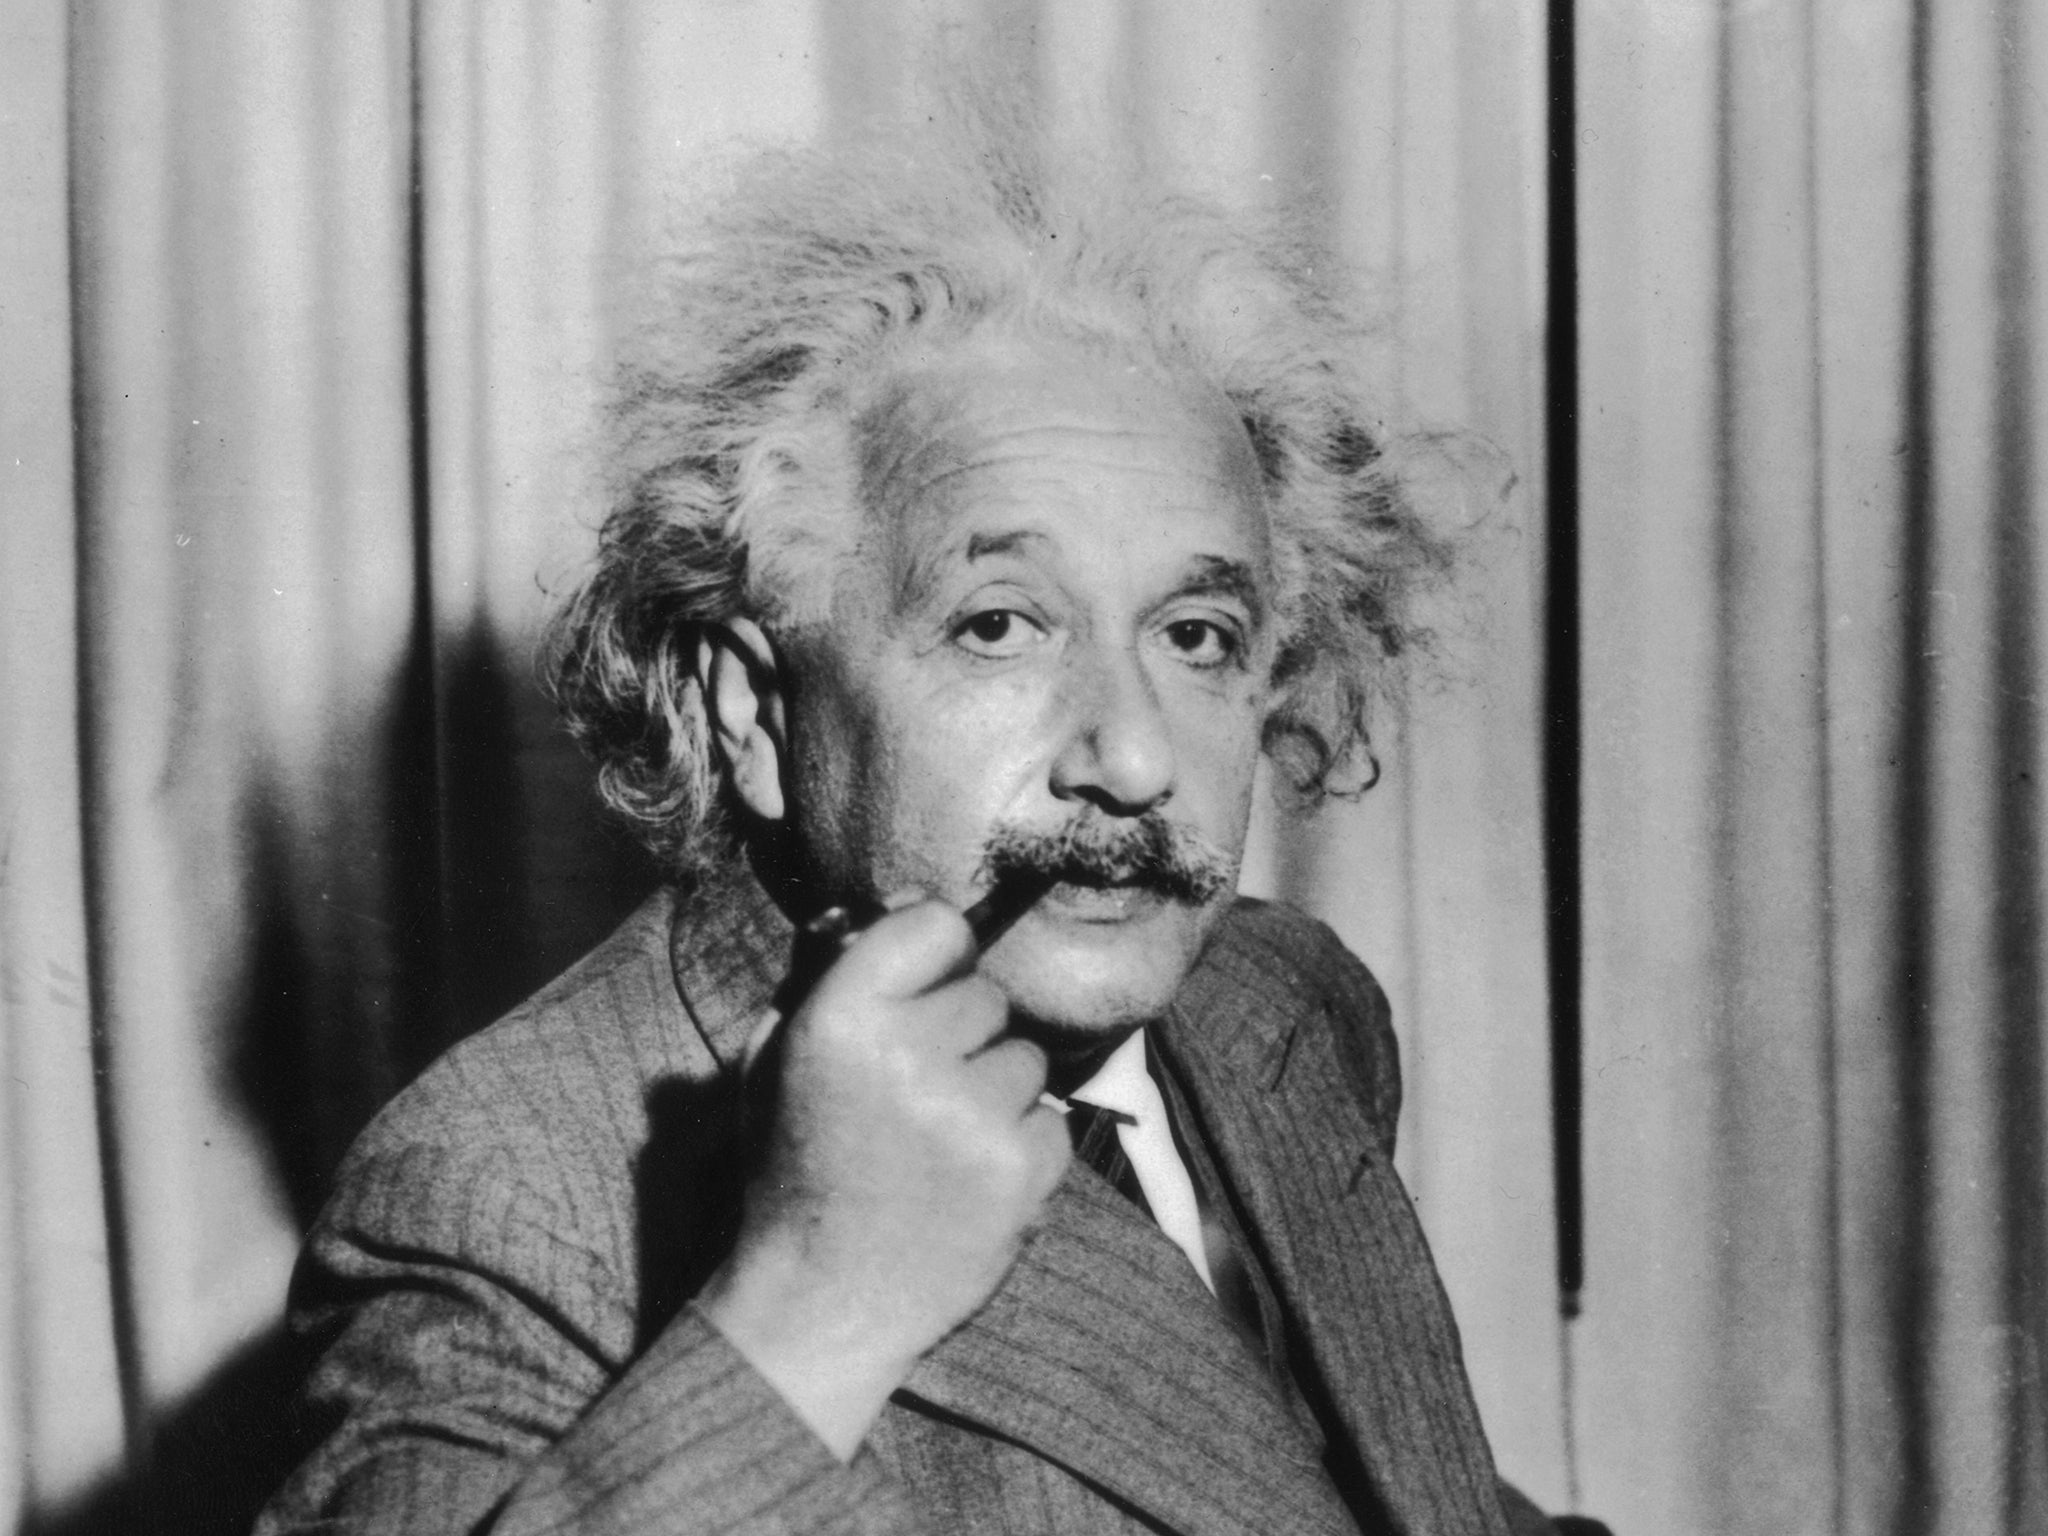 Albert Einstein's 'God letter' in which he rejected religion auctioned for $3m